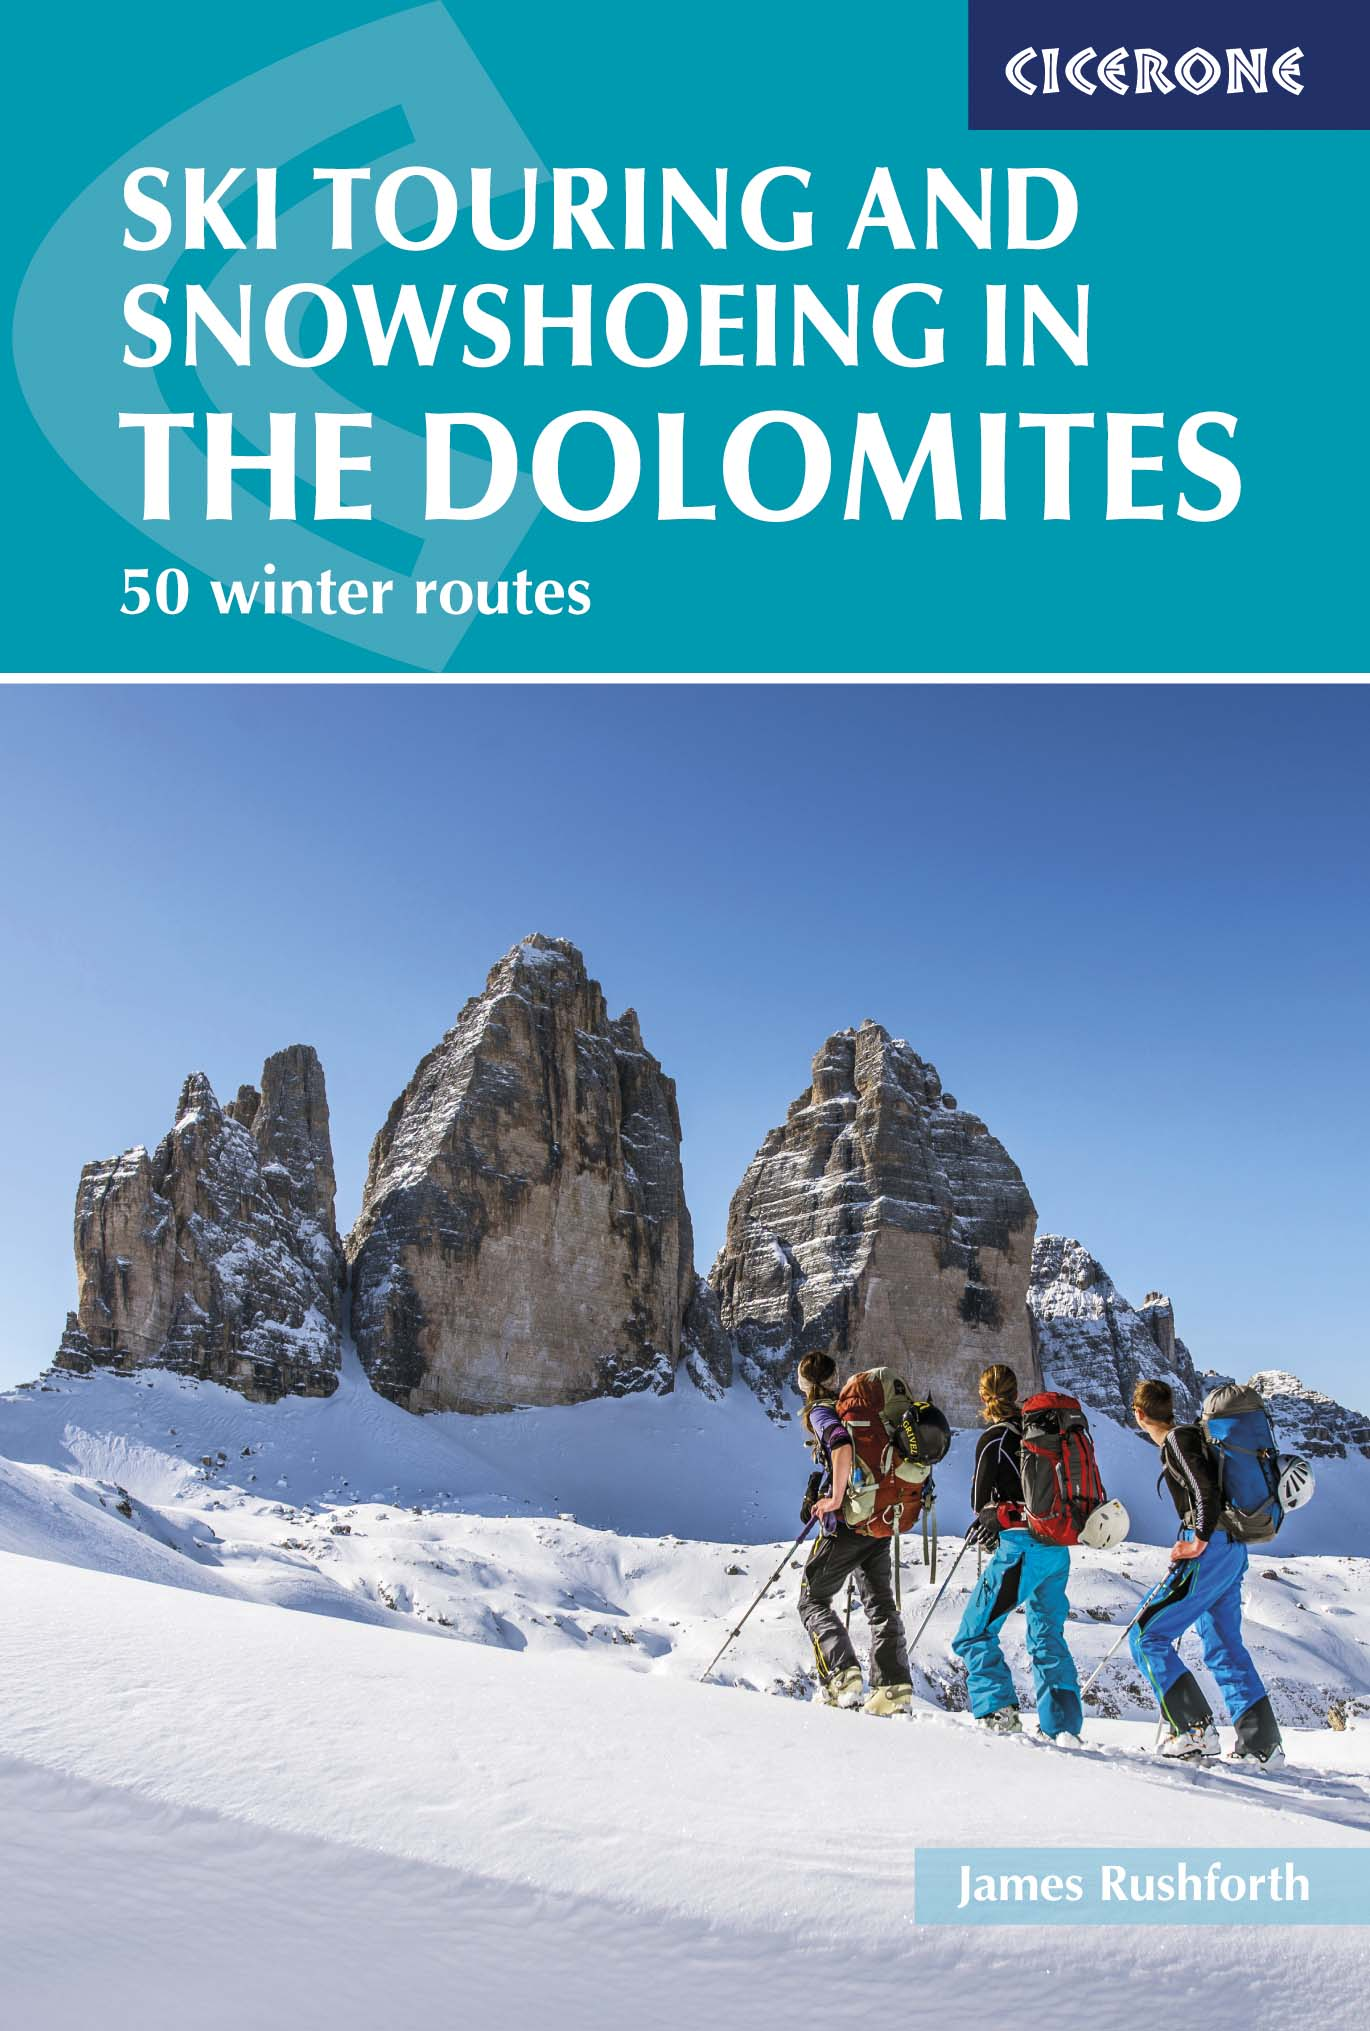 Ski Touring and Snowshoeing in the Dolomites